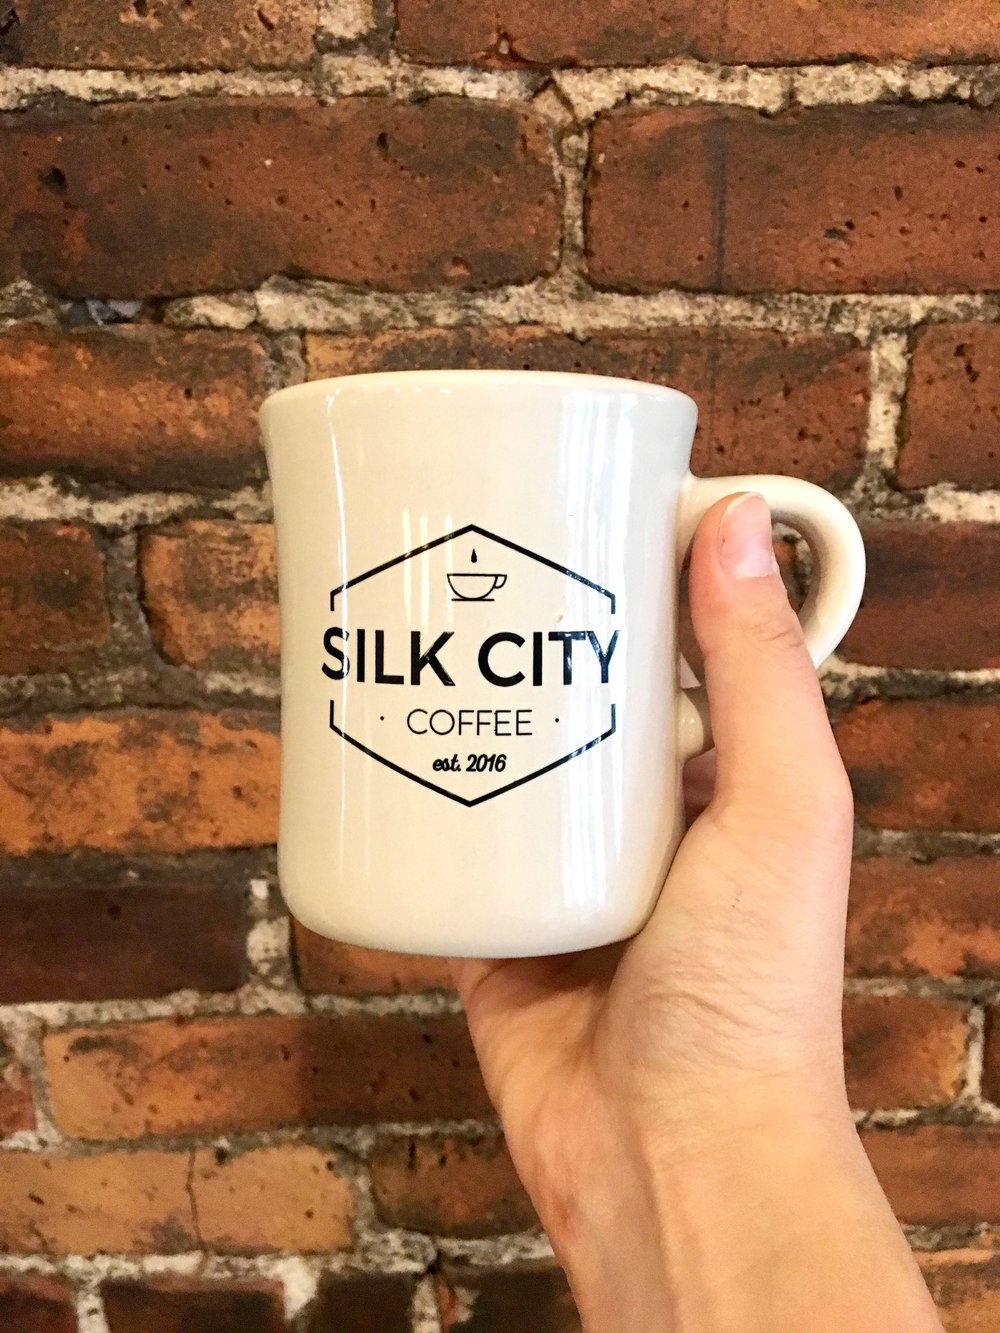 USE #SILKCITYOPENING TO ENTER TO WIN!